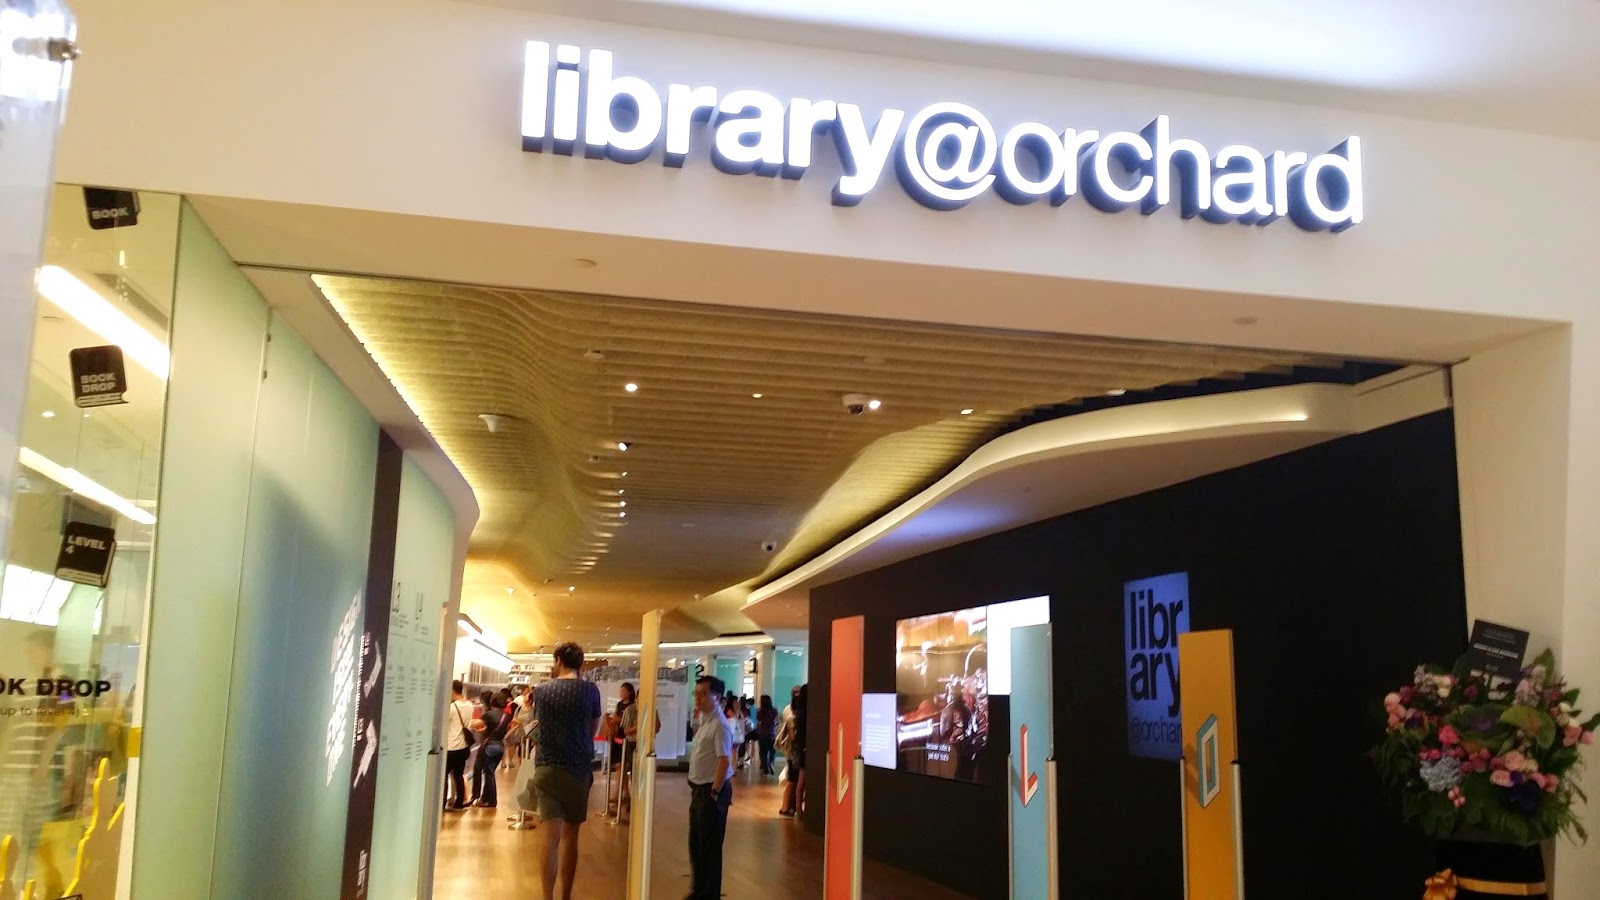 Library@orchard at Orchard Gateway